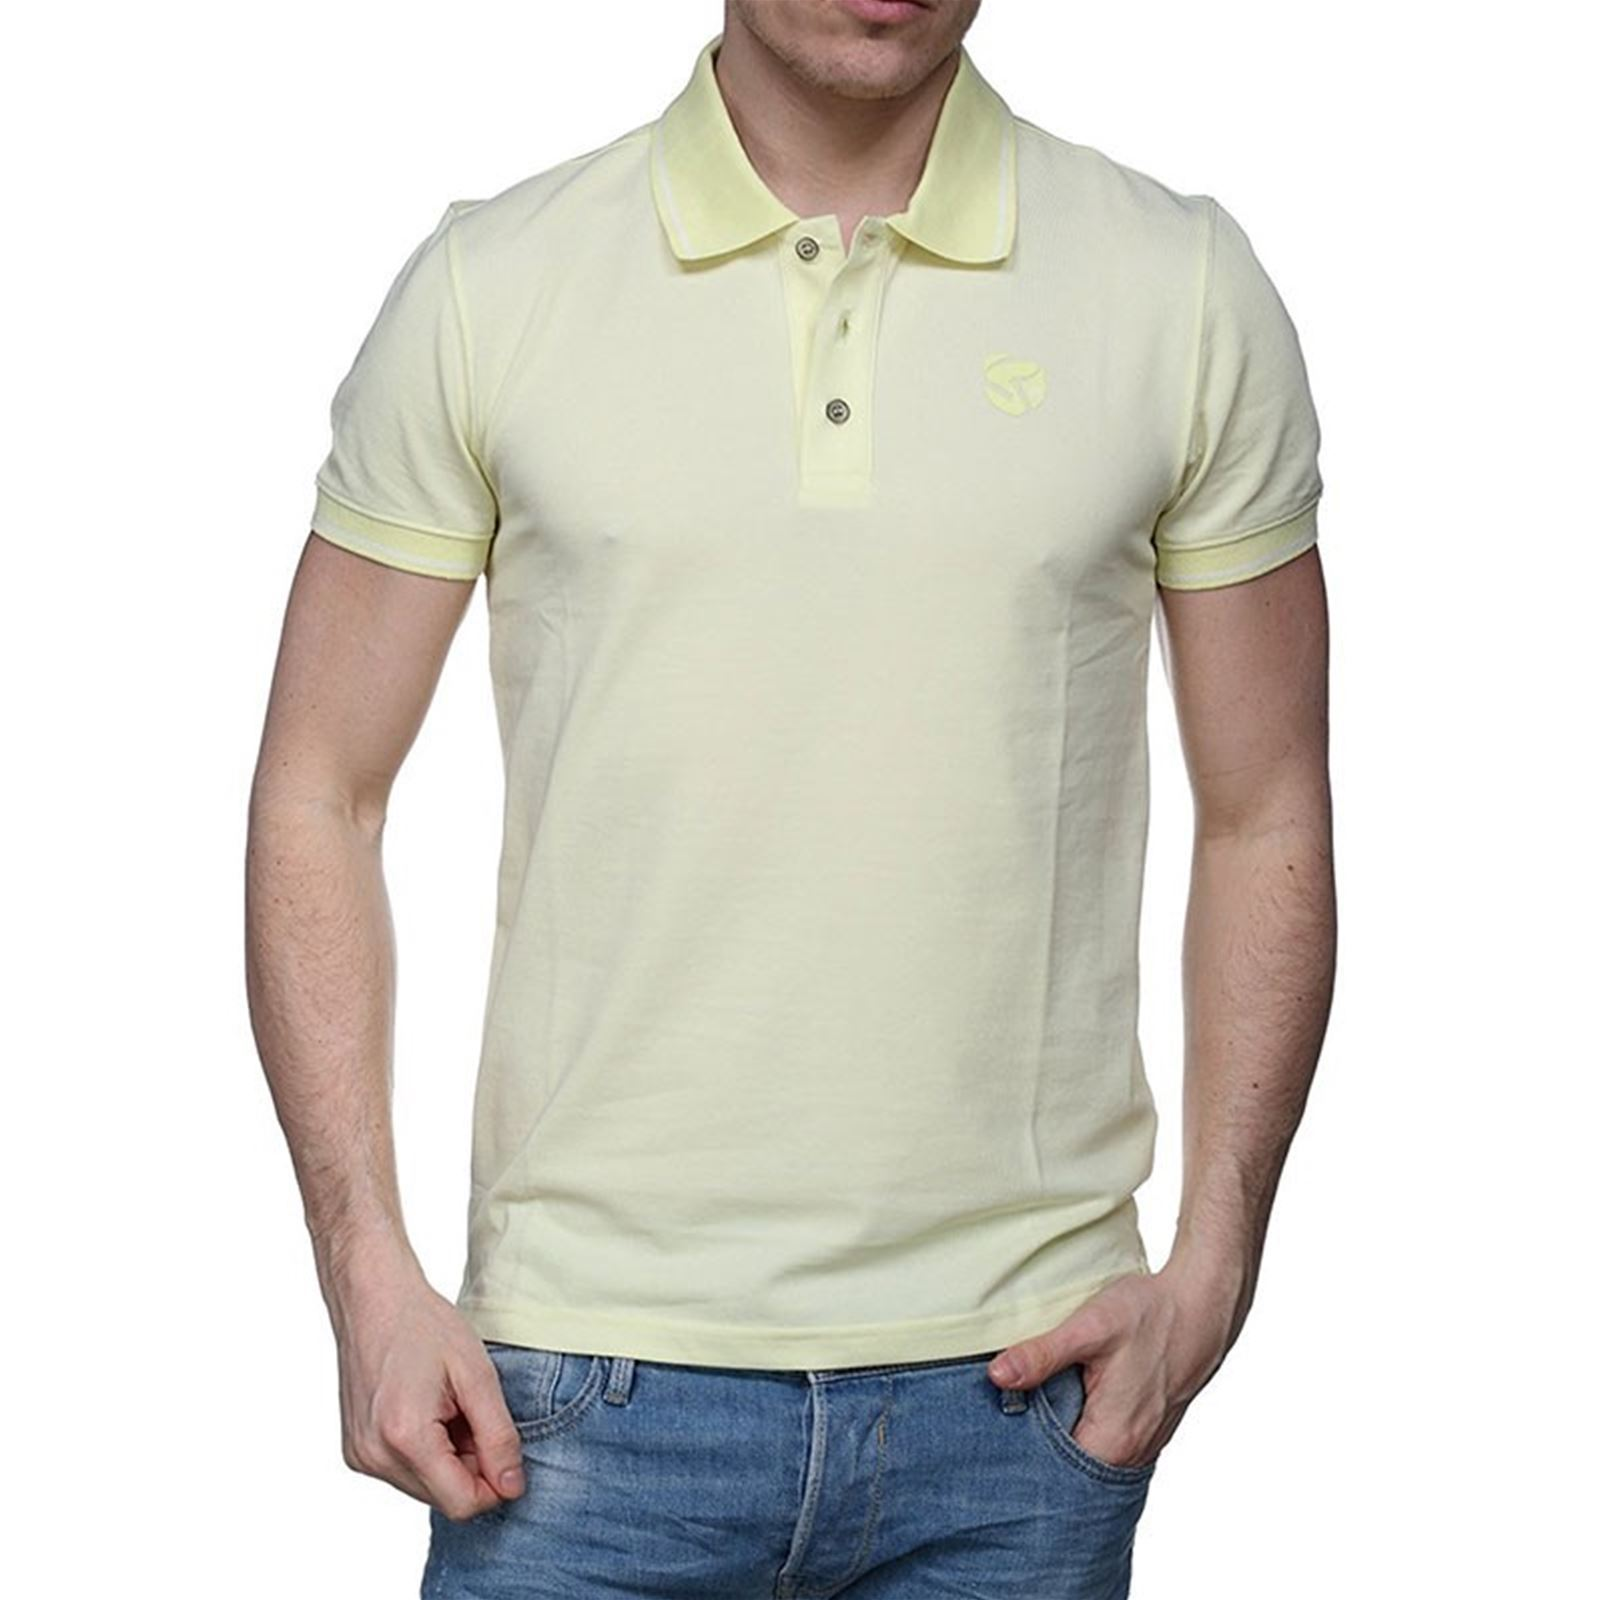 Jaune Polo Ariz Homme Courtes V Redskins ChandlerManches VjLqpGSUMz